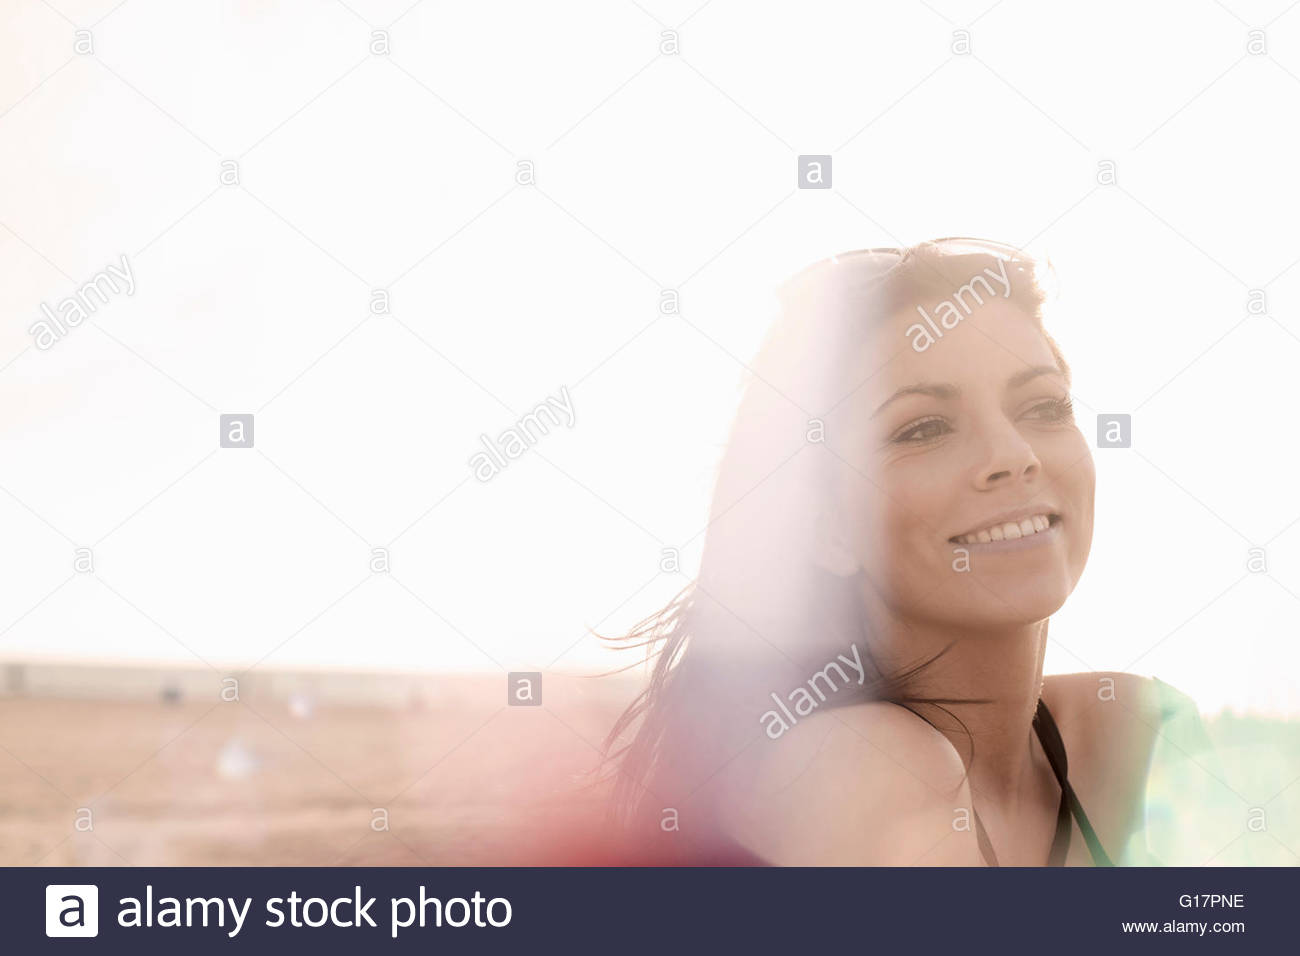 Young woman with long brown hair on beach, Santa Monica, California, USA - Stock Image